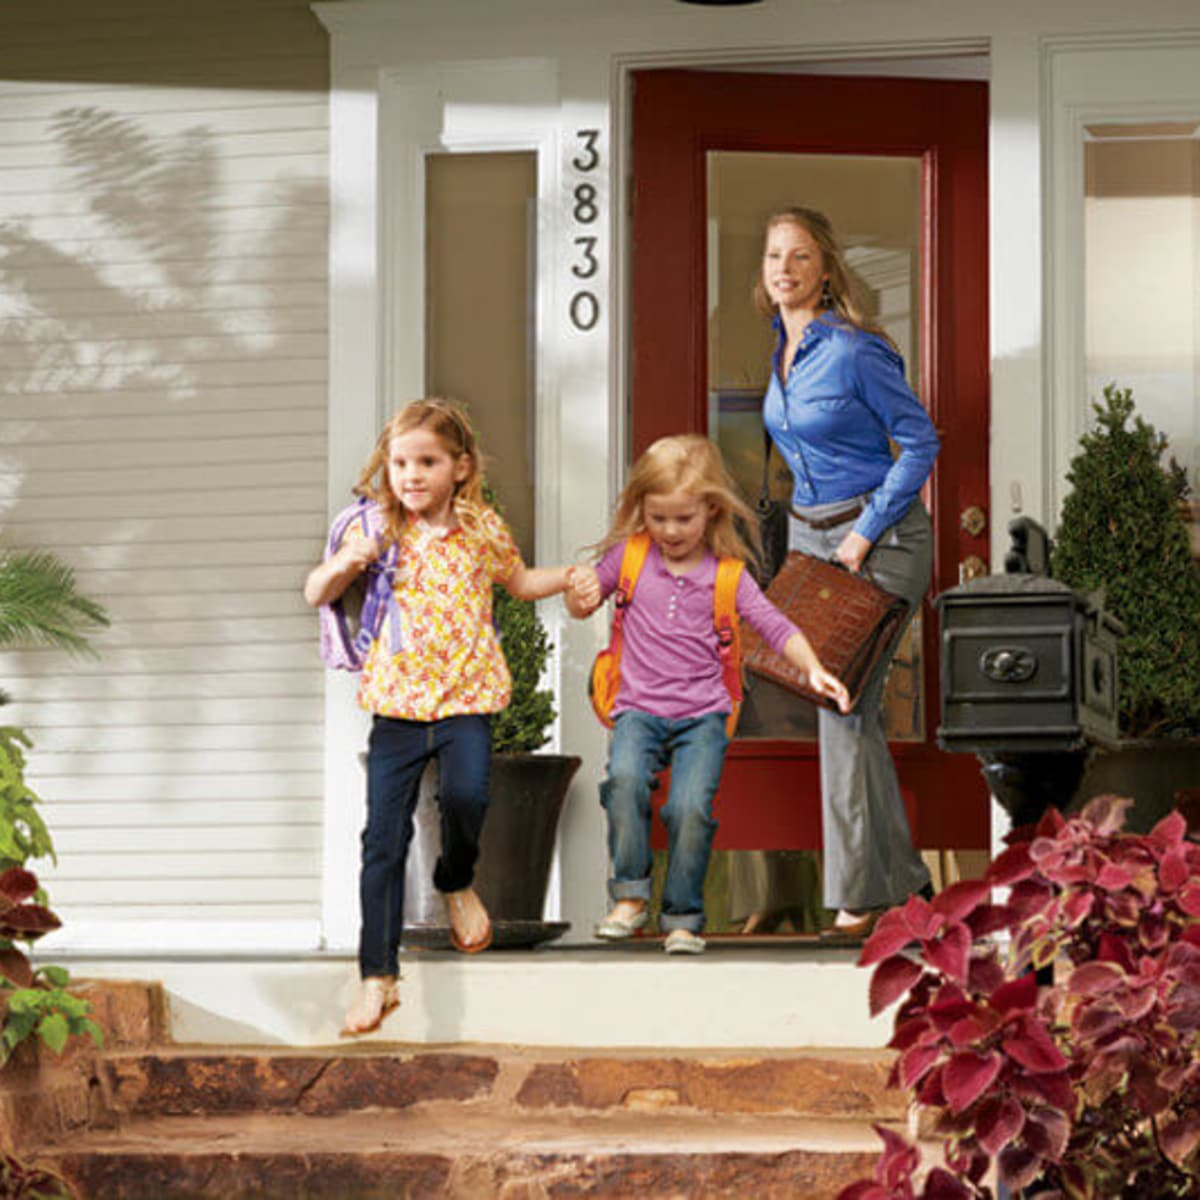 Family coming out of house